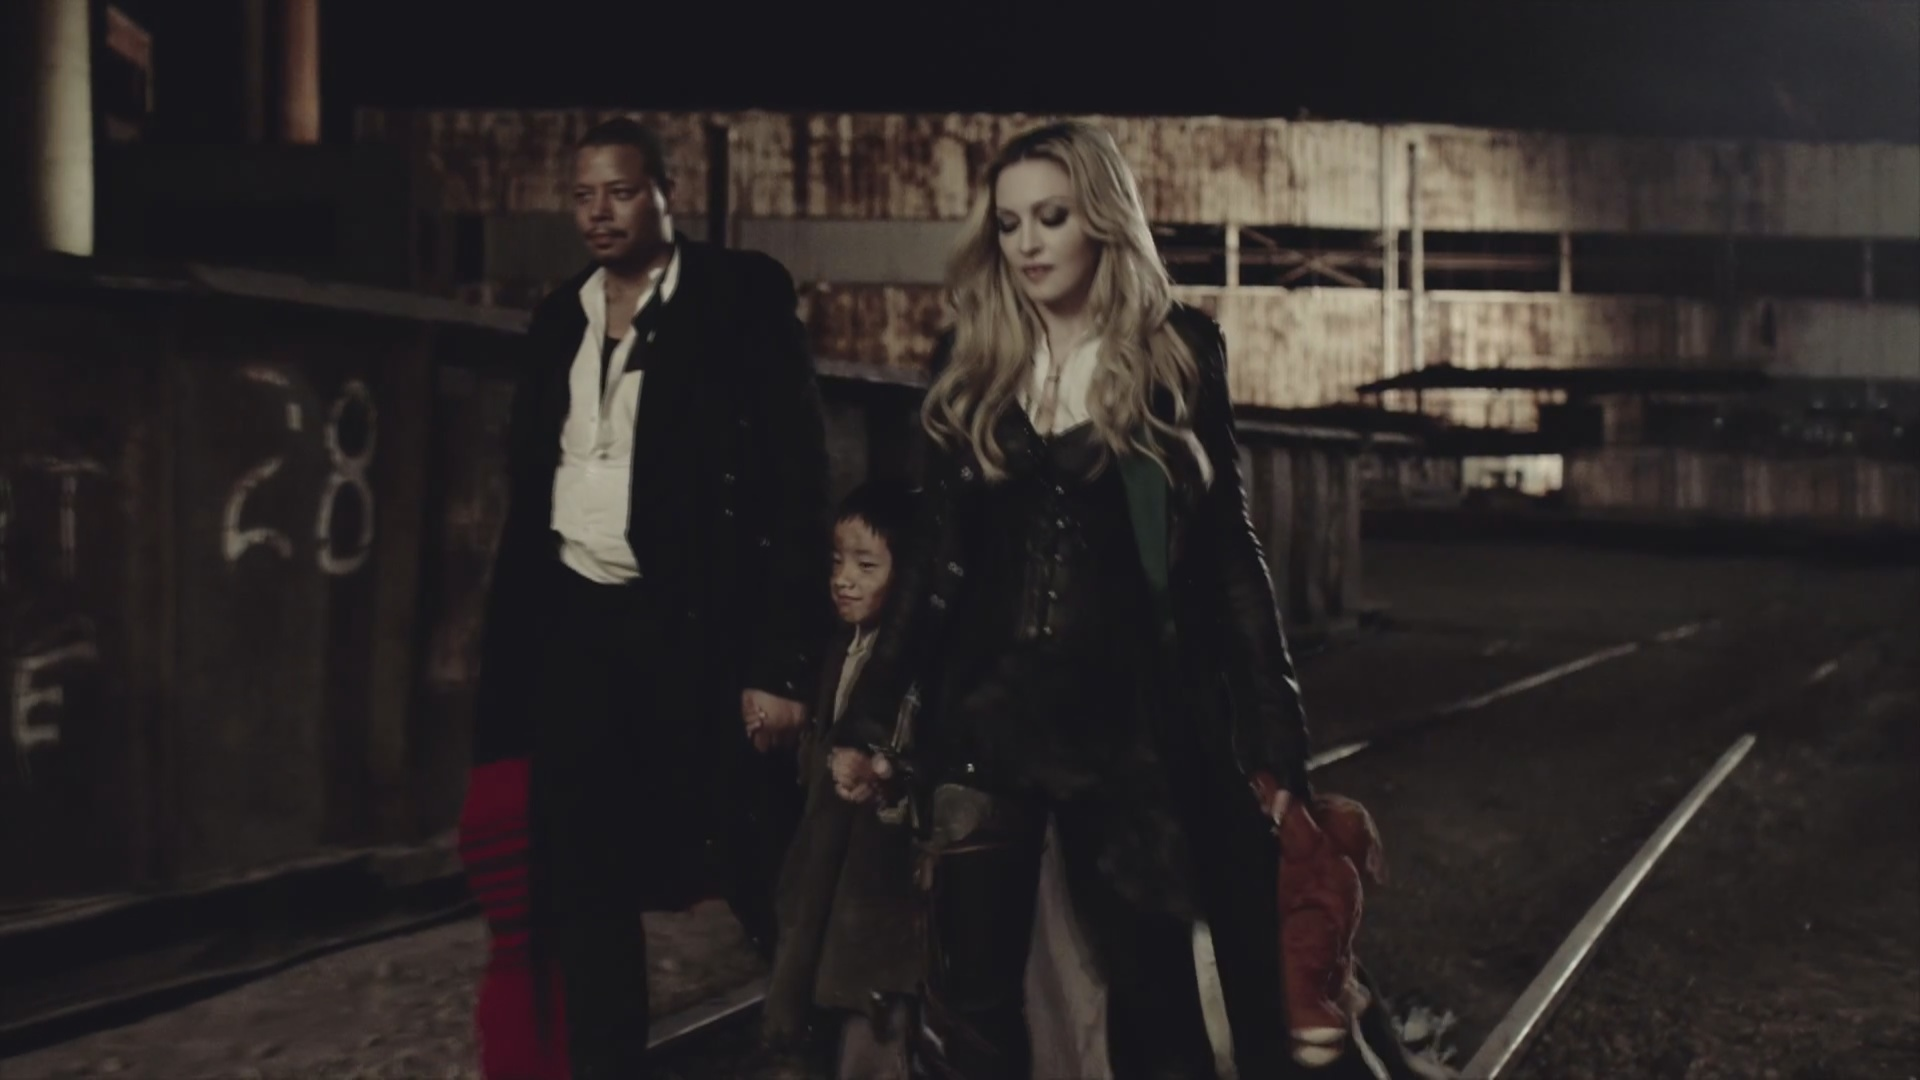 madonna ghosttown video rebel heart15